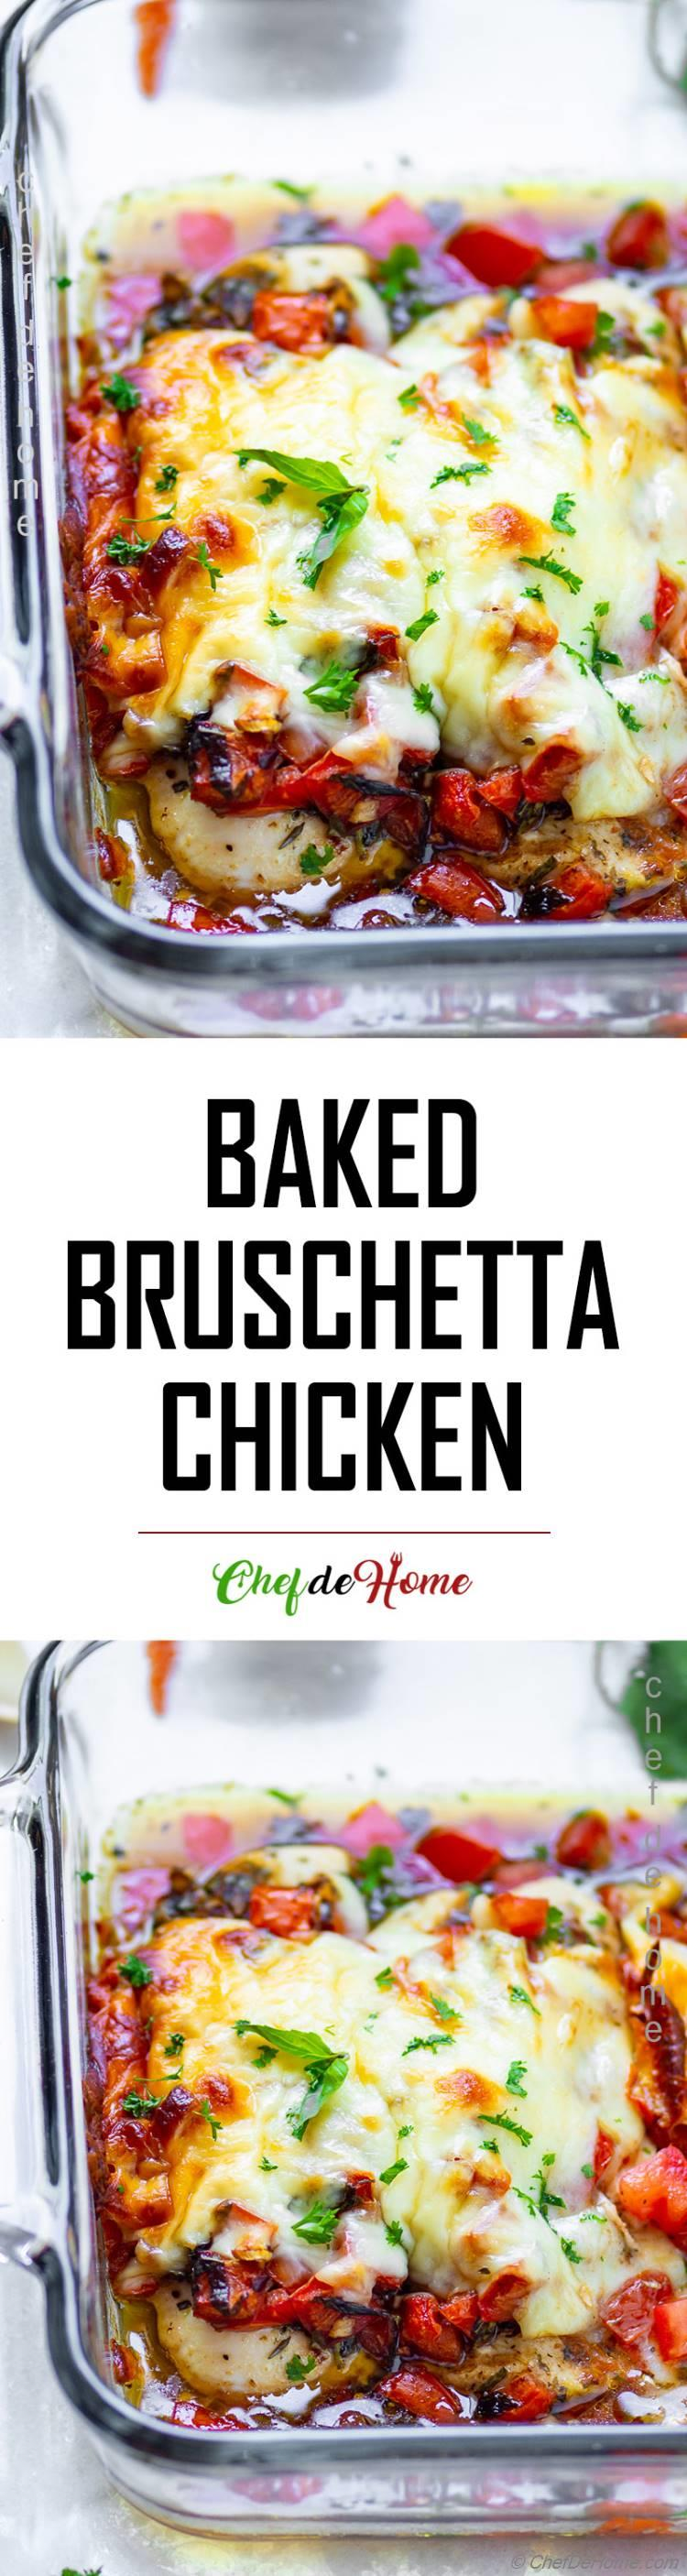 Best Ever Bruschetta Chicken Recipe